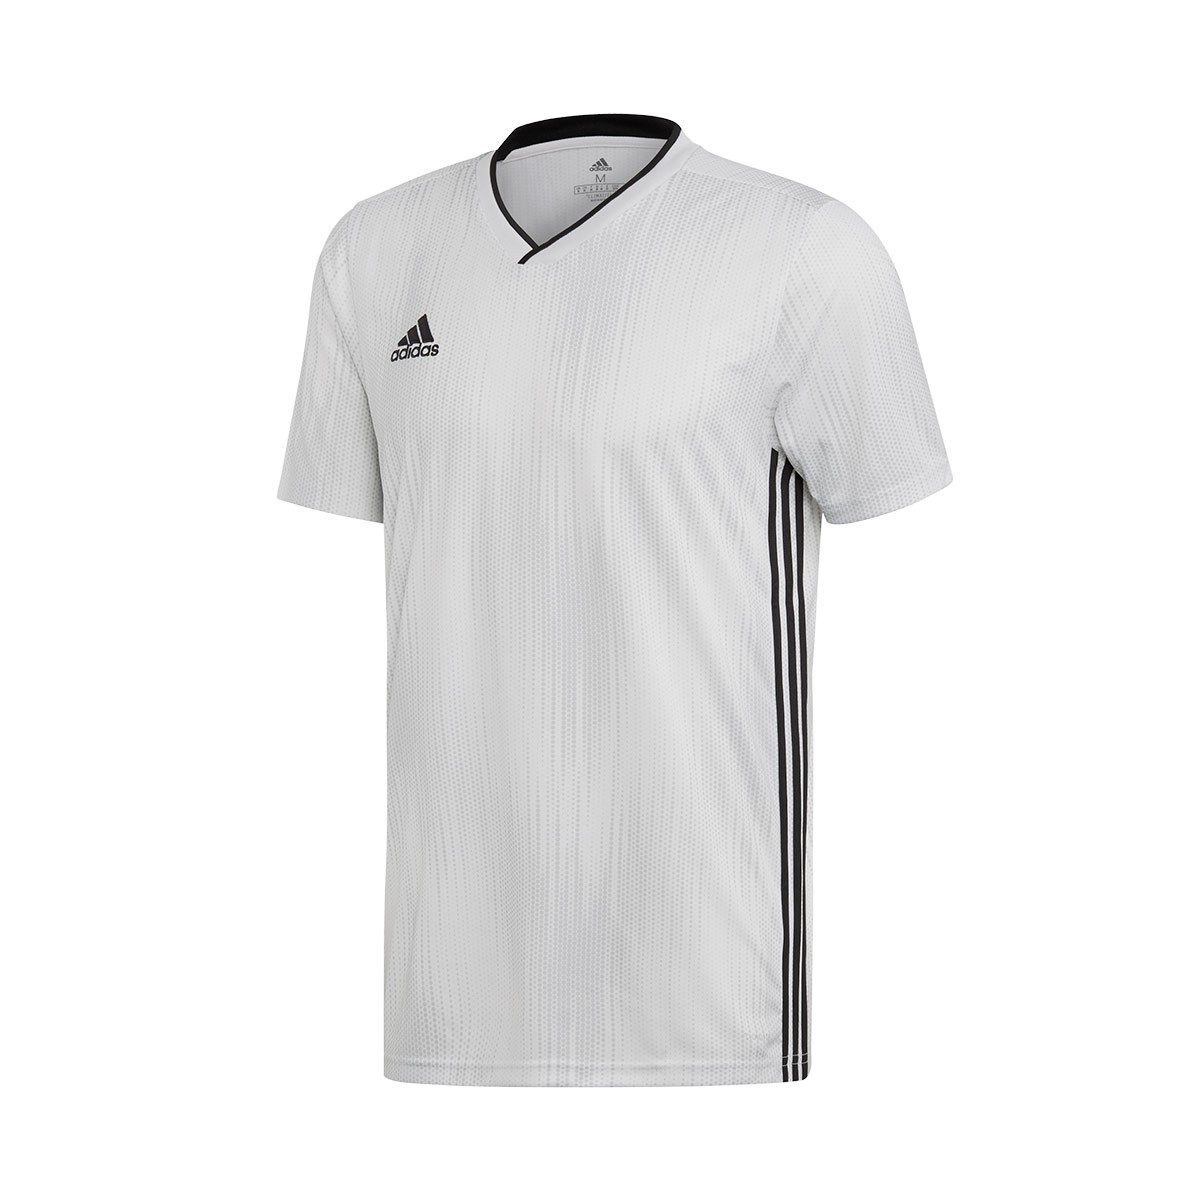 Honorable rosado administrar  Jersey adidas Tiro 19 m/c White-Black - Football store Fútbol Emotion